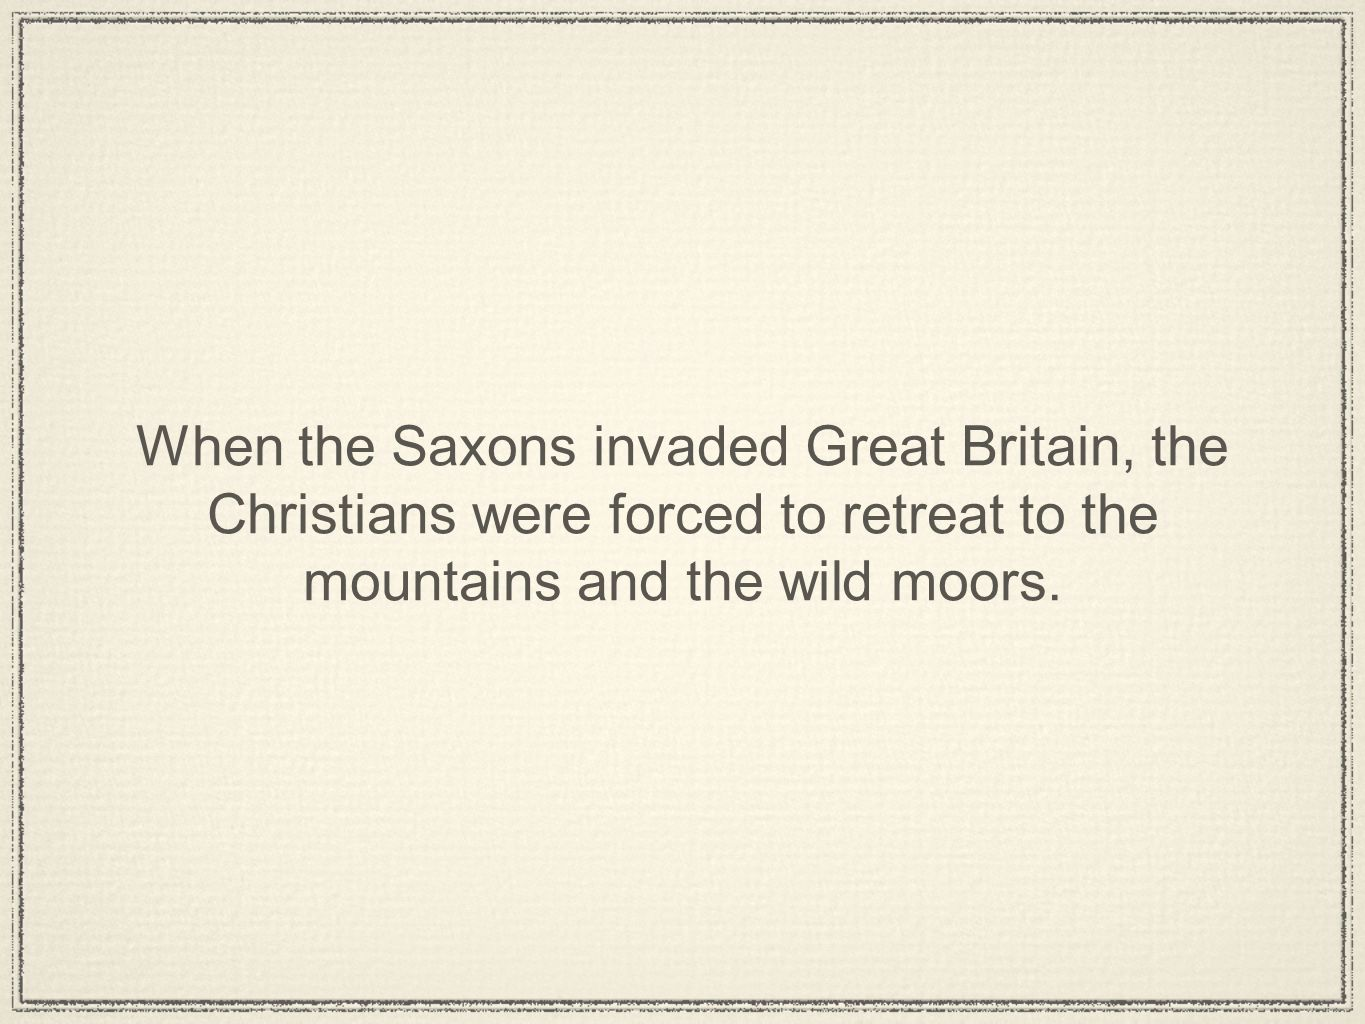 When the Saxons invaded Great Britain, the Christians were forced to retreat to the mountains and the wild moors.